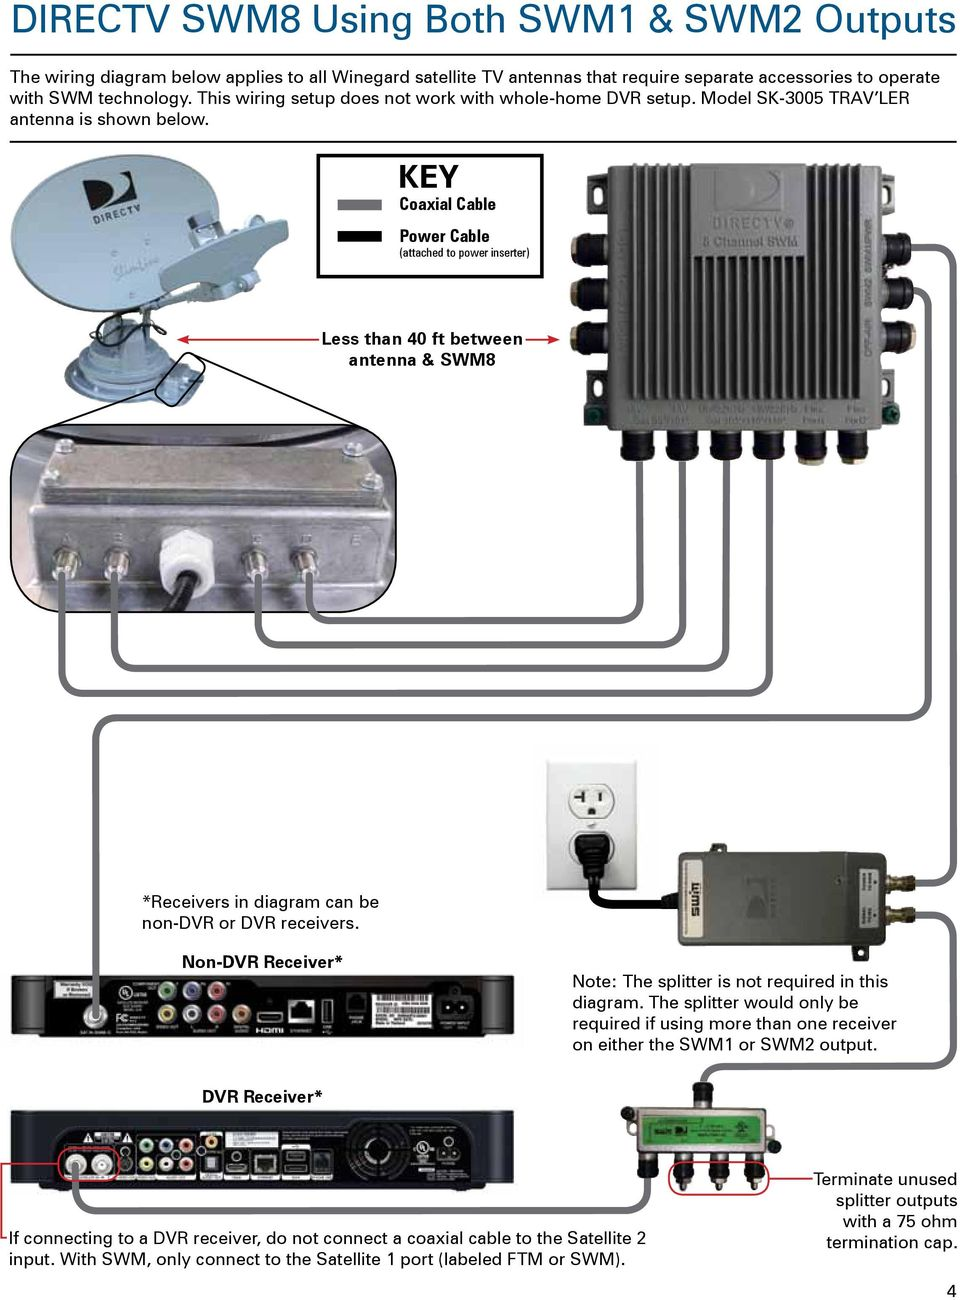 Snap Fancy Directv Genie Wiring Diagram Components Embellishment Everything You Need To Know About